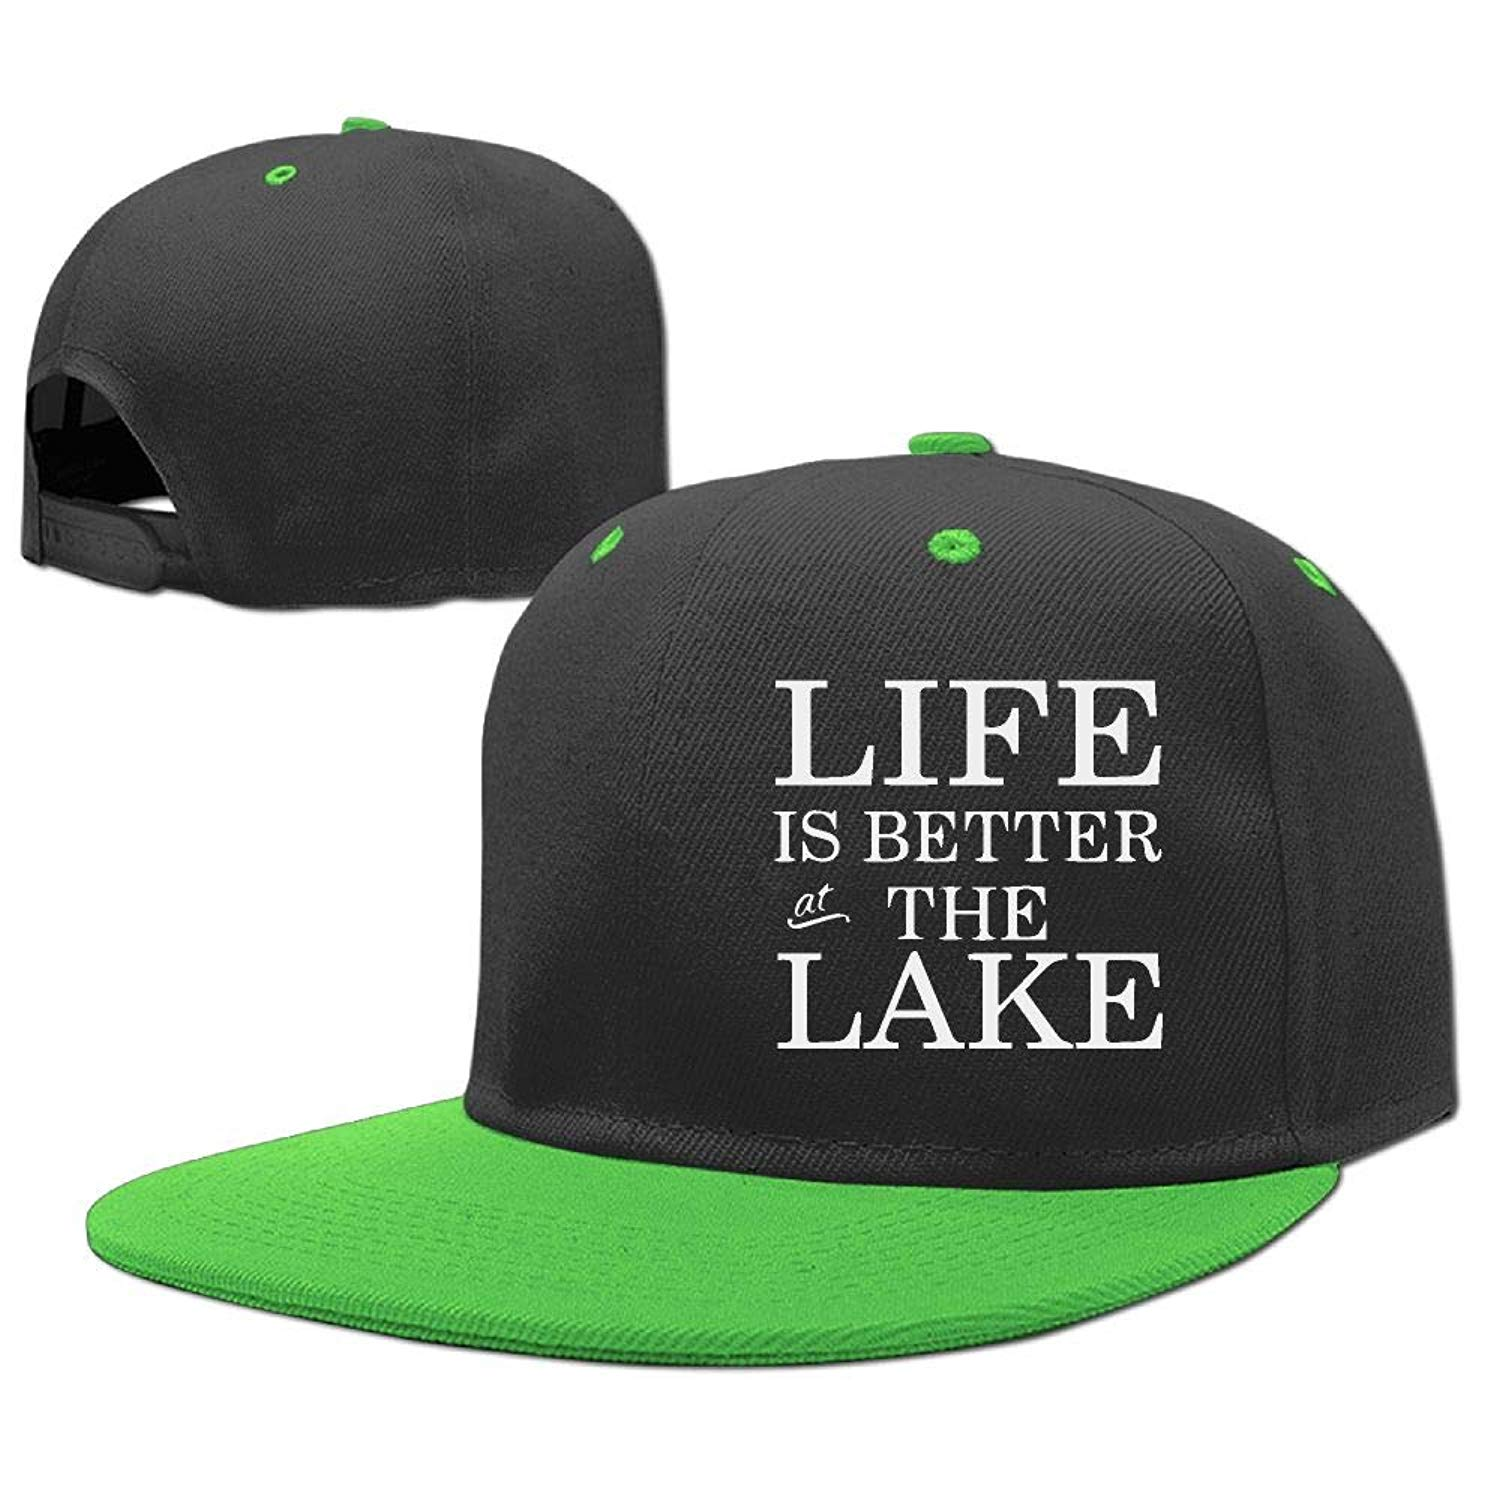 8186fd5efd7 Get Quotations · Unisex Kids Classic Hip Hop Baseball Cap Life is Better On  The Lake Cotton Sports Hat